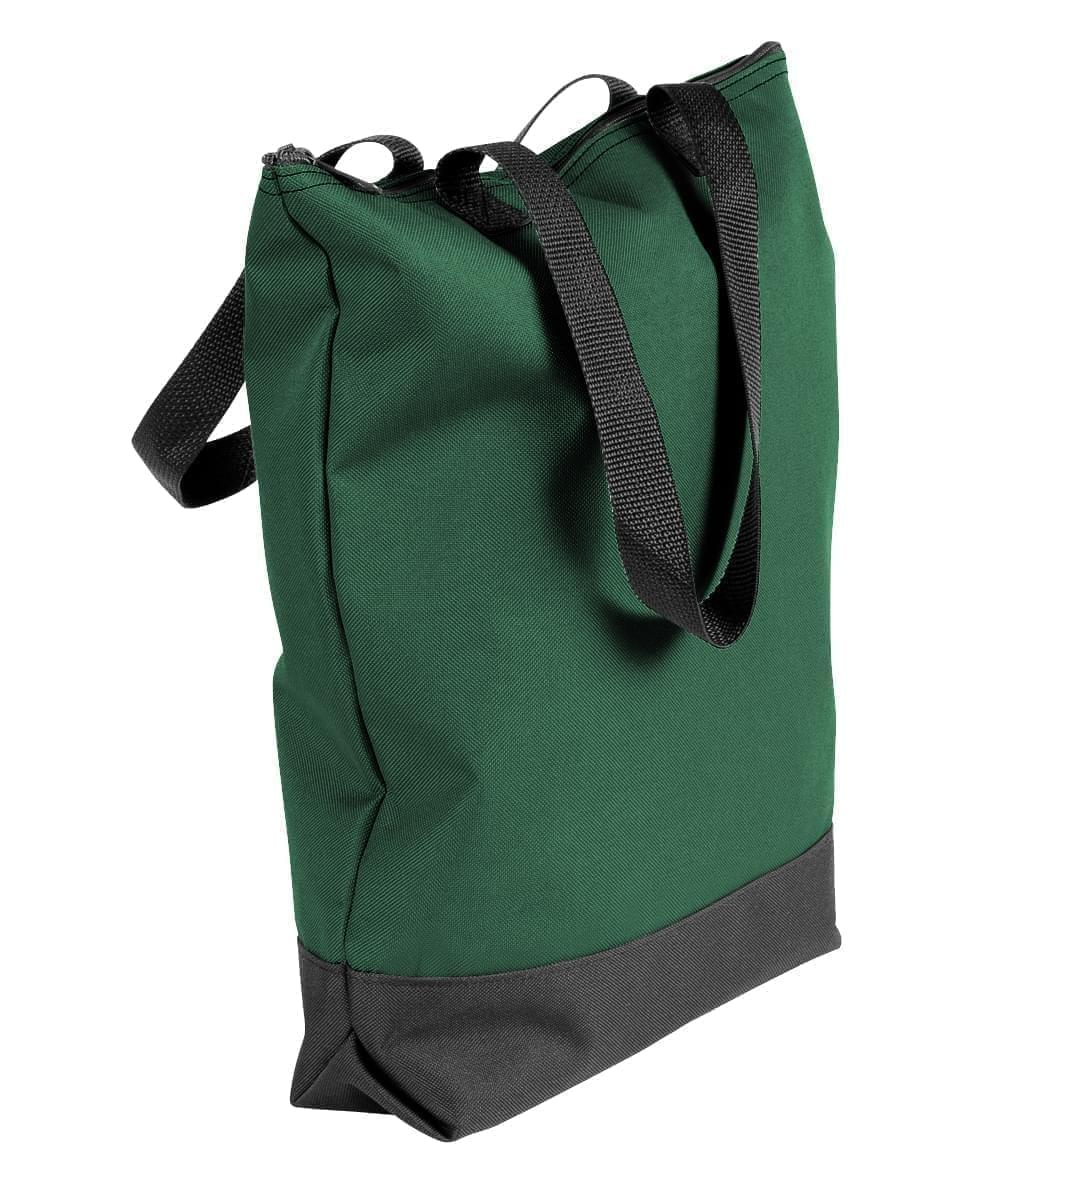 USA Made Canvas Portfolio Tote Bags, Hunter Green-Black, 1AAMX1UAIR